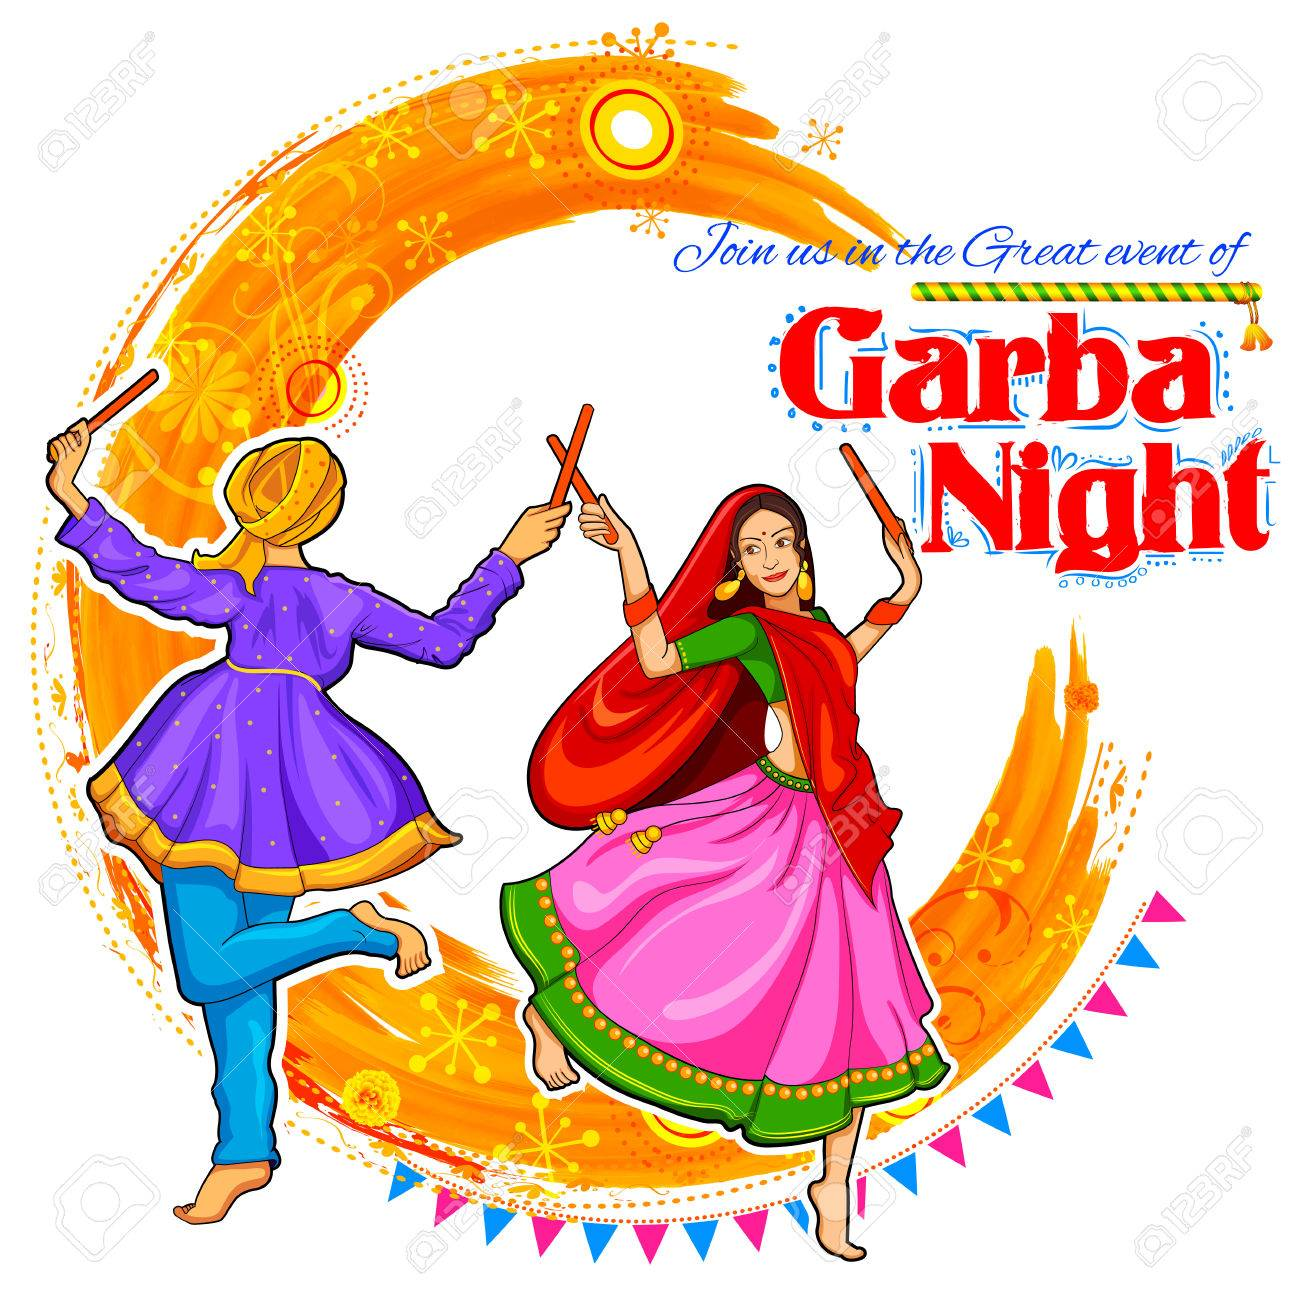 illustration of couple playing Dandiya in disco Garba Night poster for Navratri Dussehra festival of India - 66603716